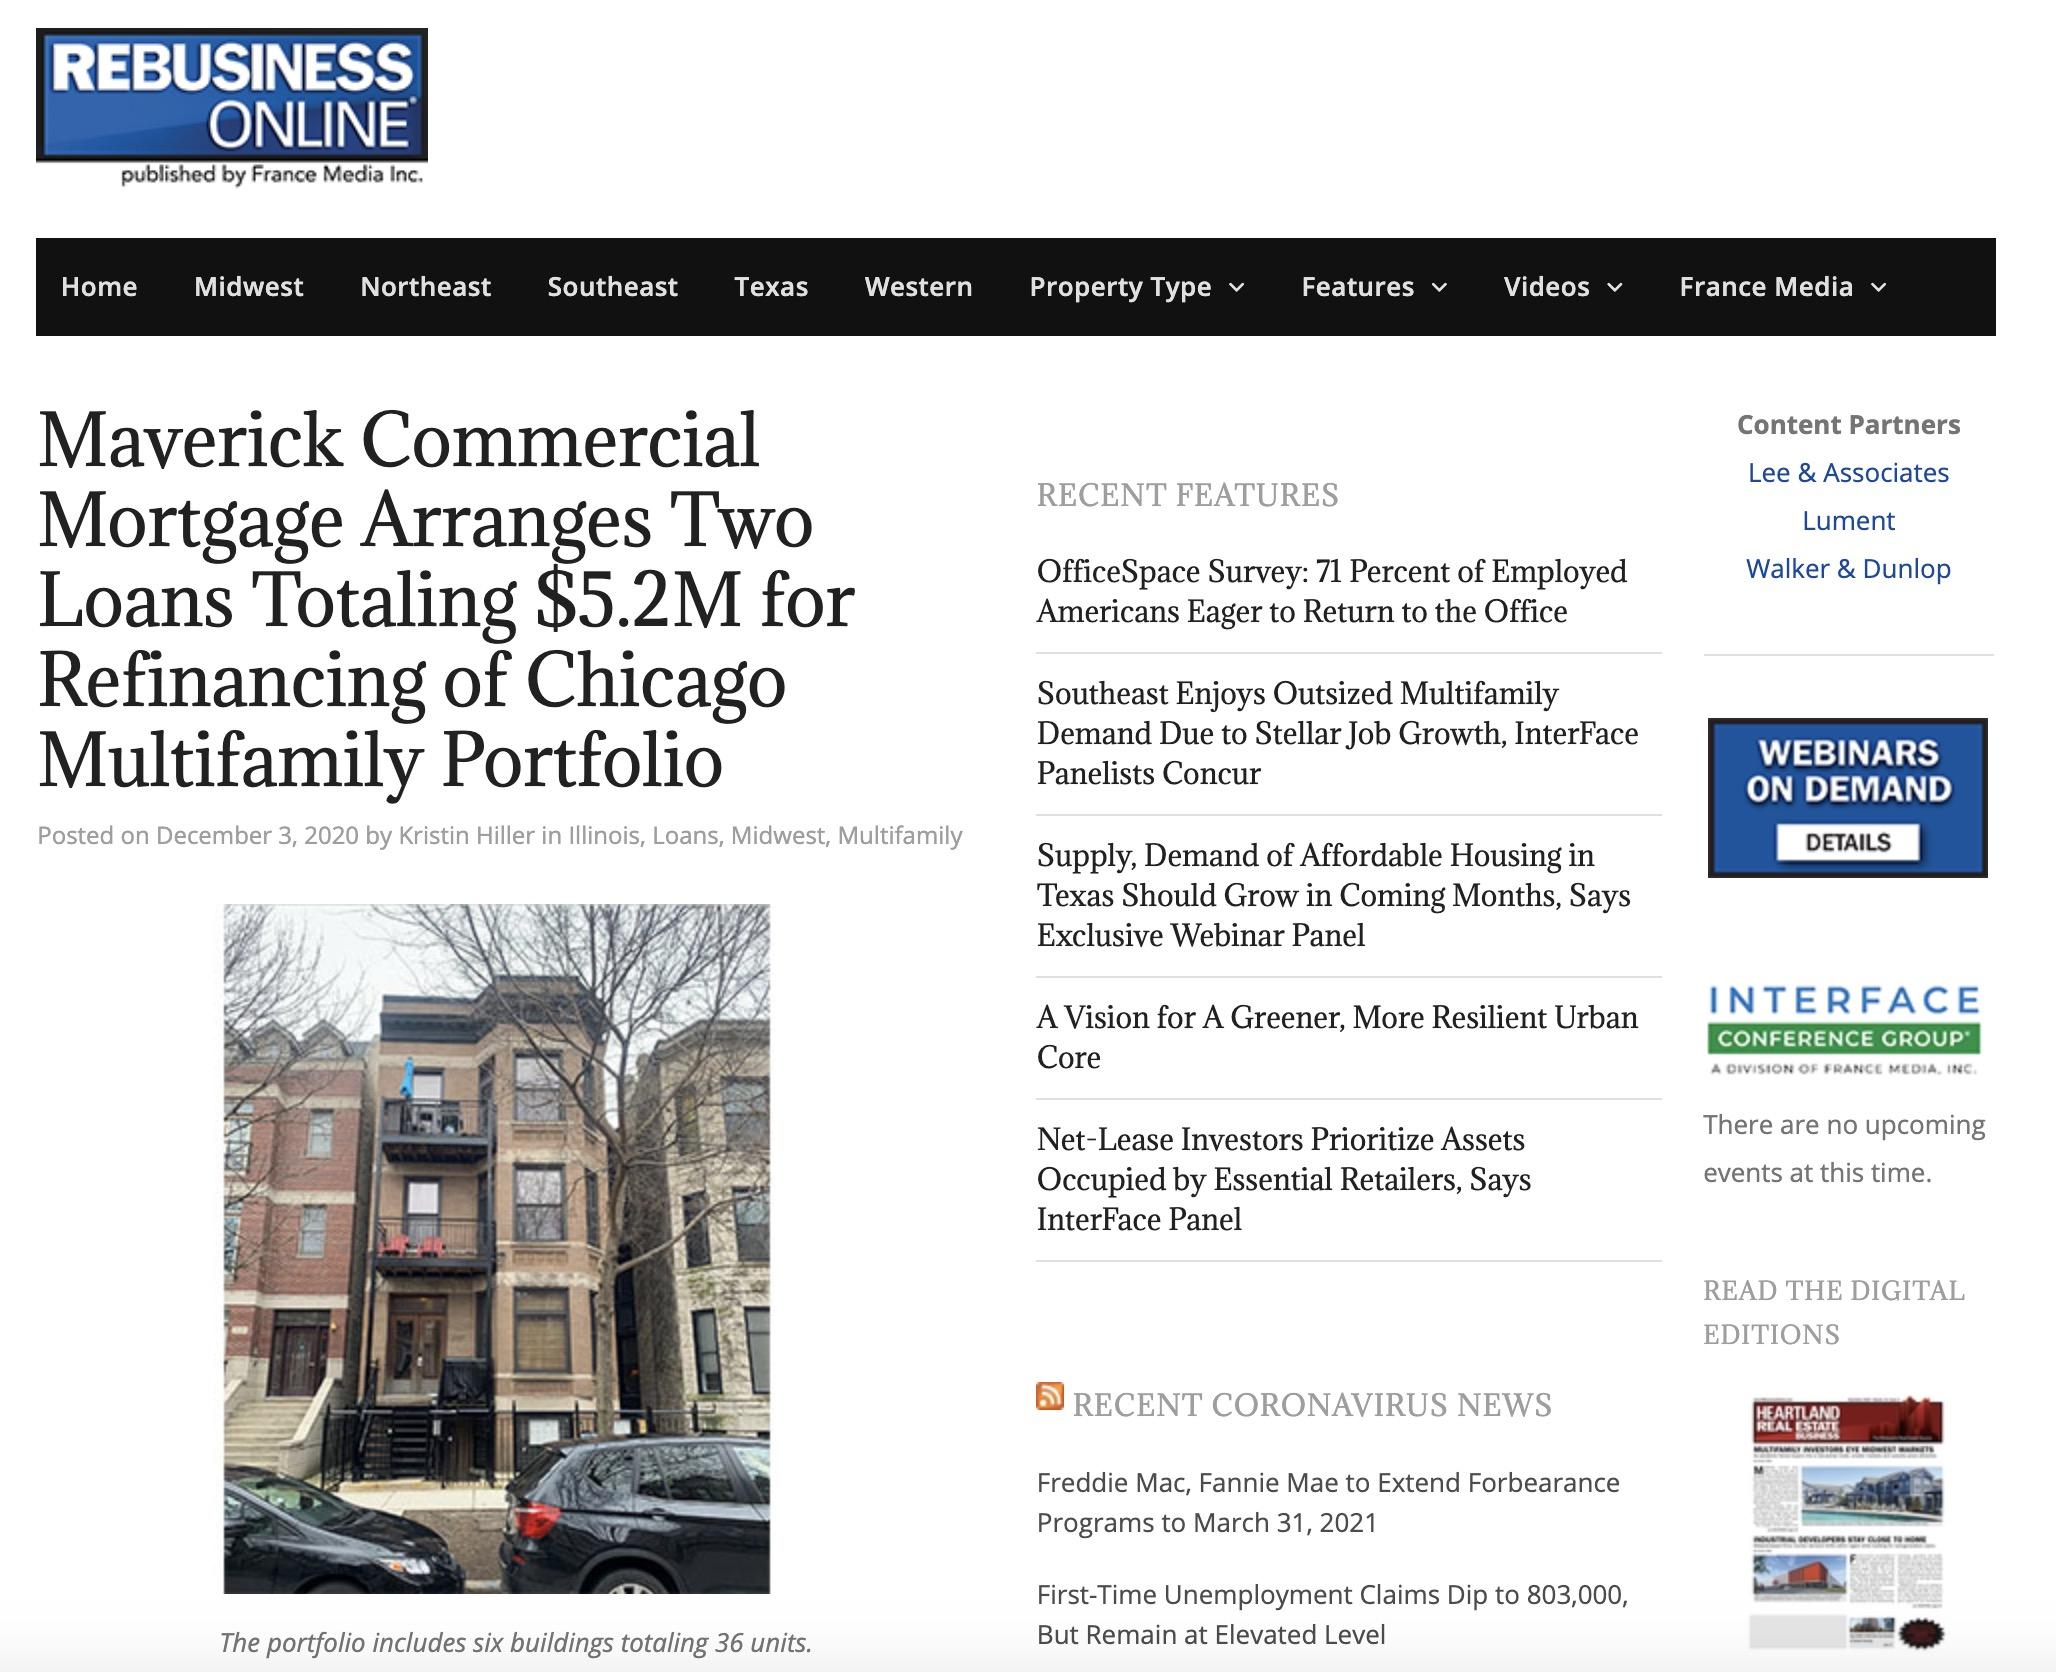 Maverick Commercial Mortgage Arranges Two Loans Totaling $5.2M for Refinancing of Chicago Multifamily Portfolio